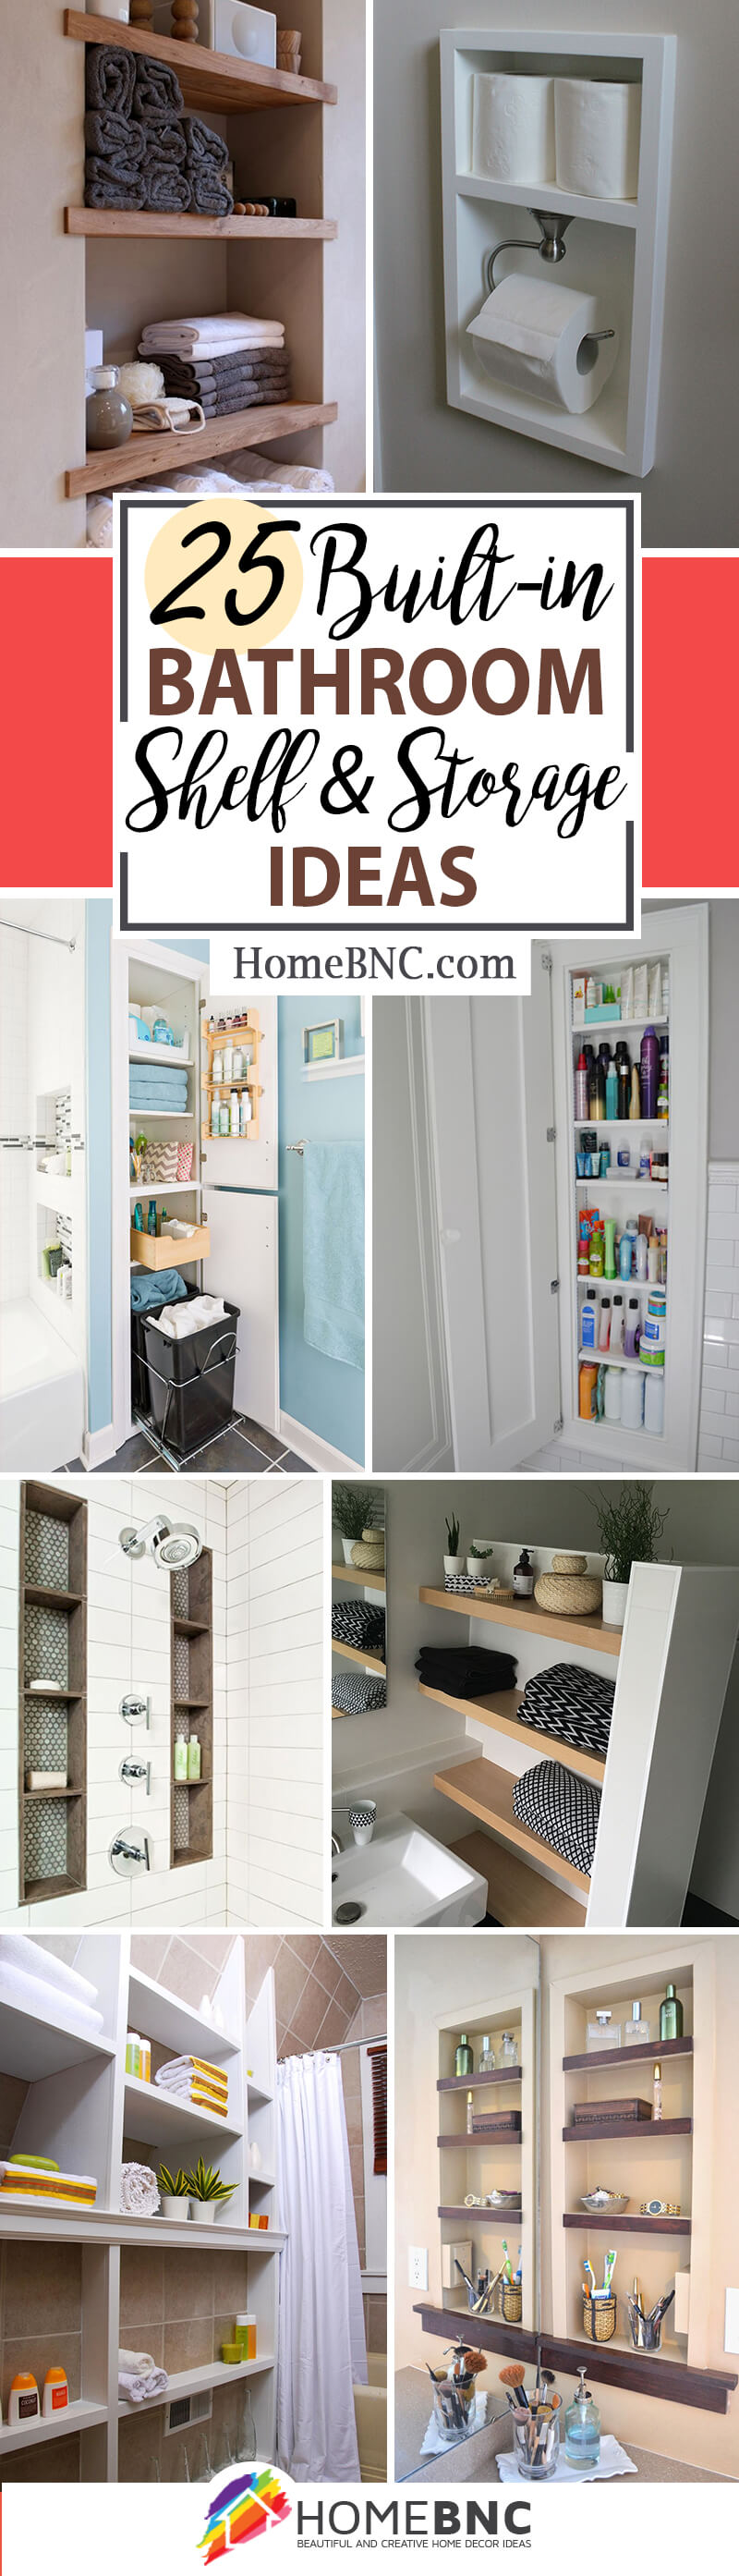 25 Brilliant Built In Bathroom Shelf And Storage Ideas To Keep You Organized With Style In 2020 Built In Bathroom Storage Bathroom Shelves Bathroom Storage Shelves